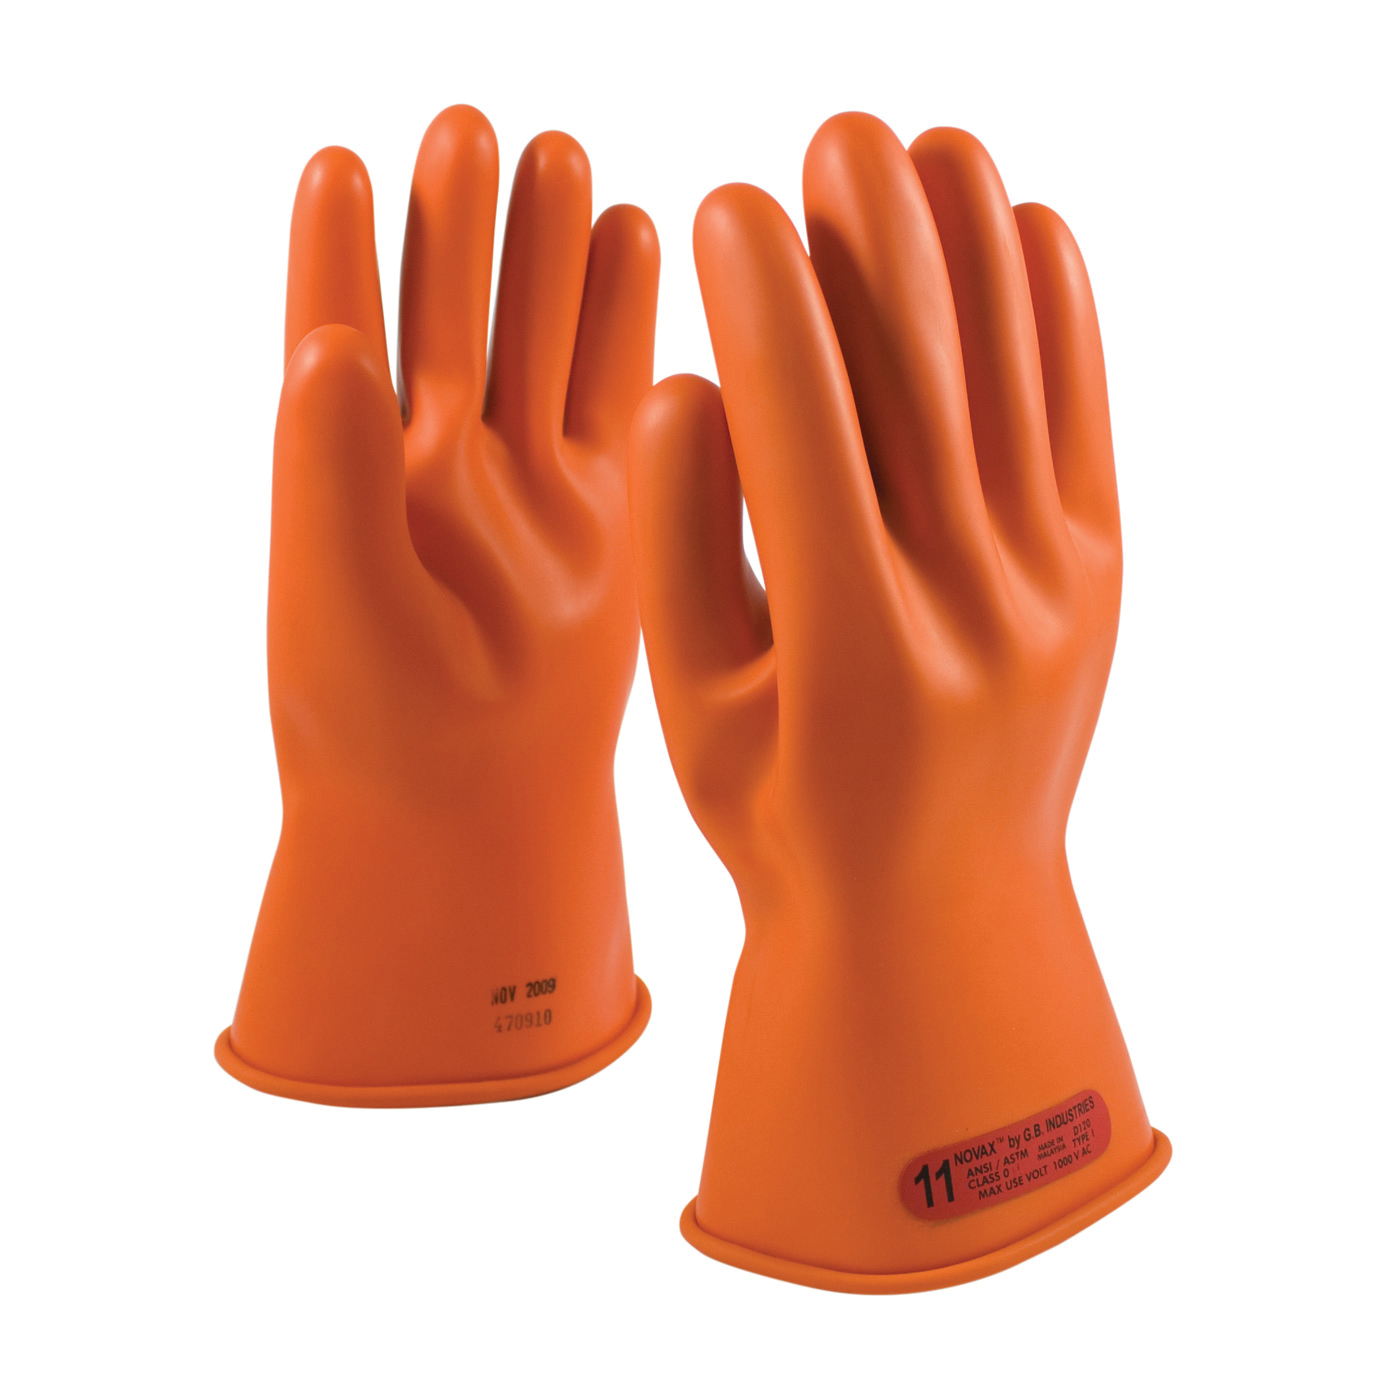 Novax® 147-0-11/8 Insulating Unisex Electrical Safety Gloves, SZ 8, Natural Rubber, Orange, 11 in L, ASTM Class: Class 0, 1000 VAC/1500 VDC Max Use Voltage